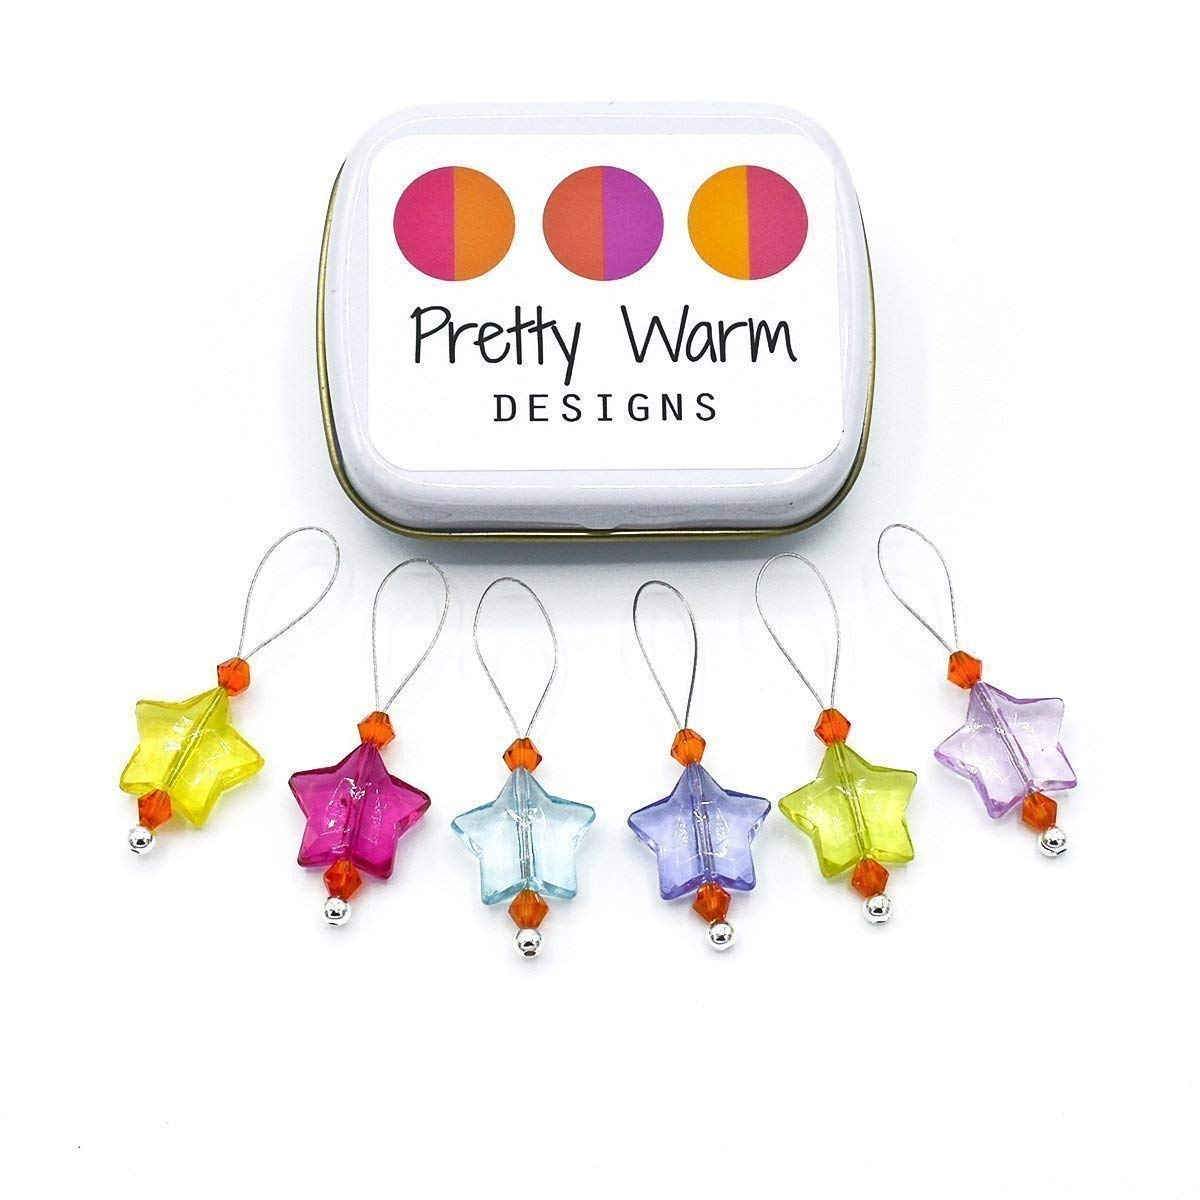 Acrylic Stars Snag Free Stitch Markers Jewelry for Knitting (Set of 6 with Tin)